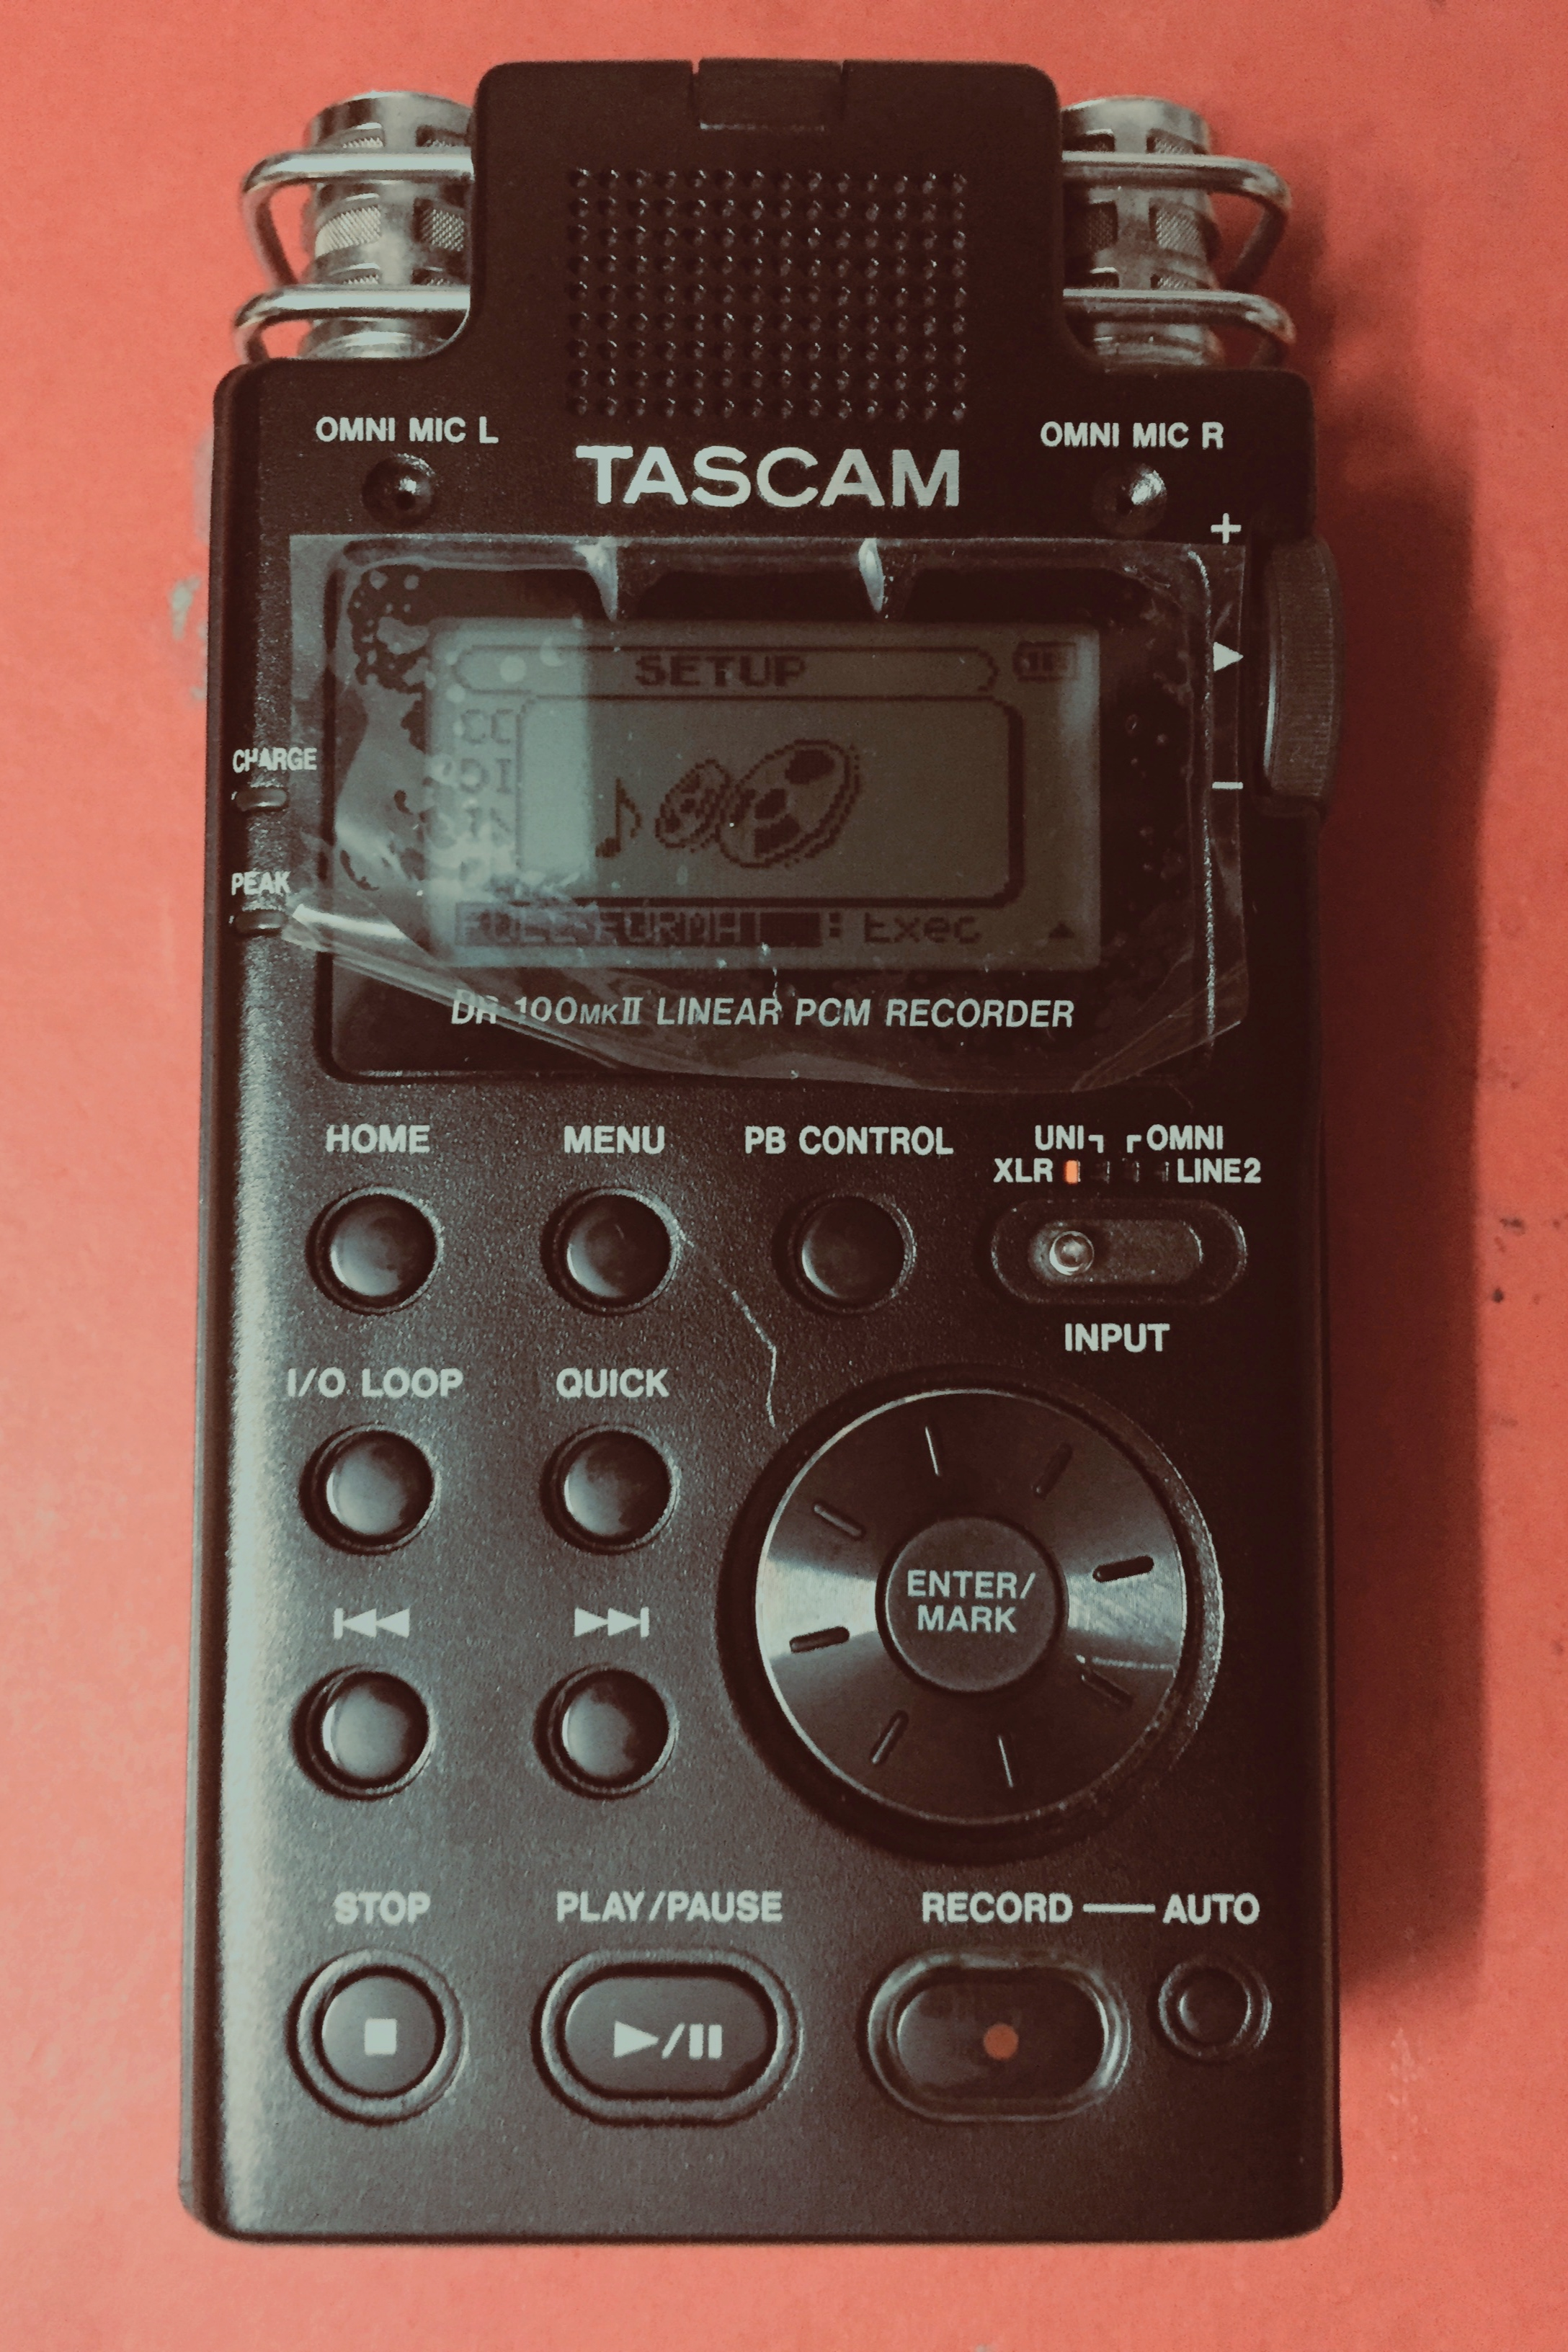 The TASCAM DR-100MKII's interface is non-intuitive compared to other recording devices available to us like our smartphones; even though it offers more customised controls. Hence, it has a higher learning curve.